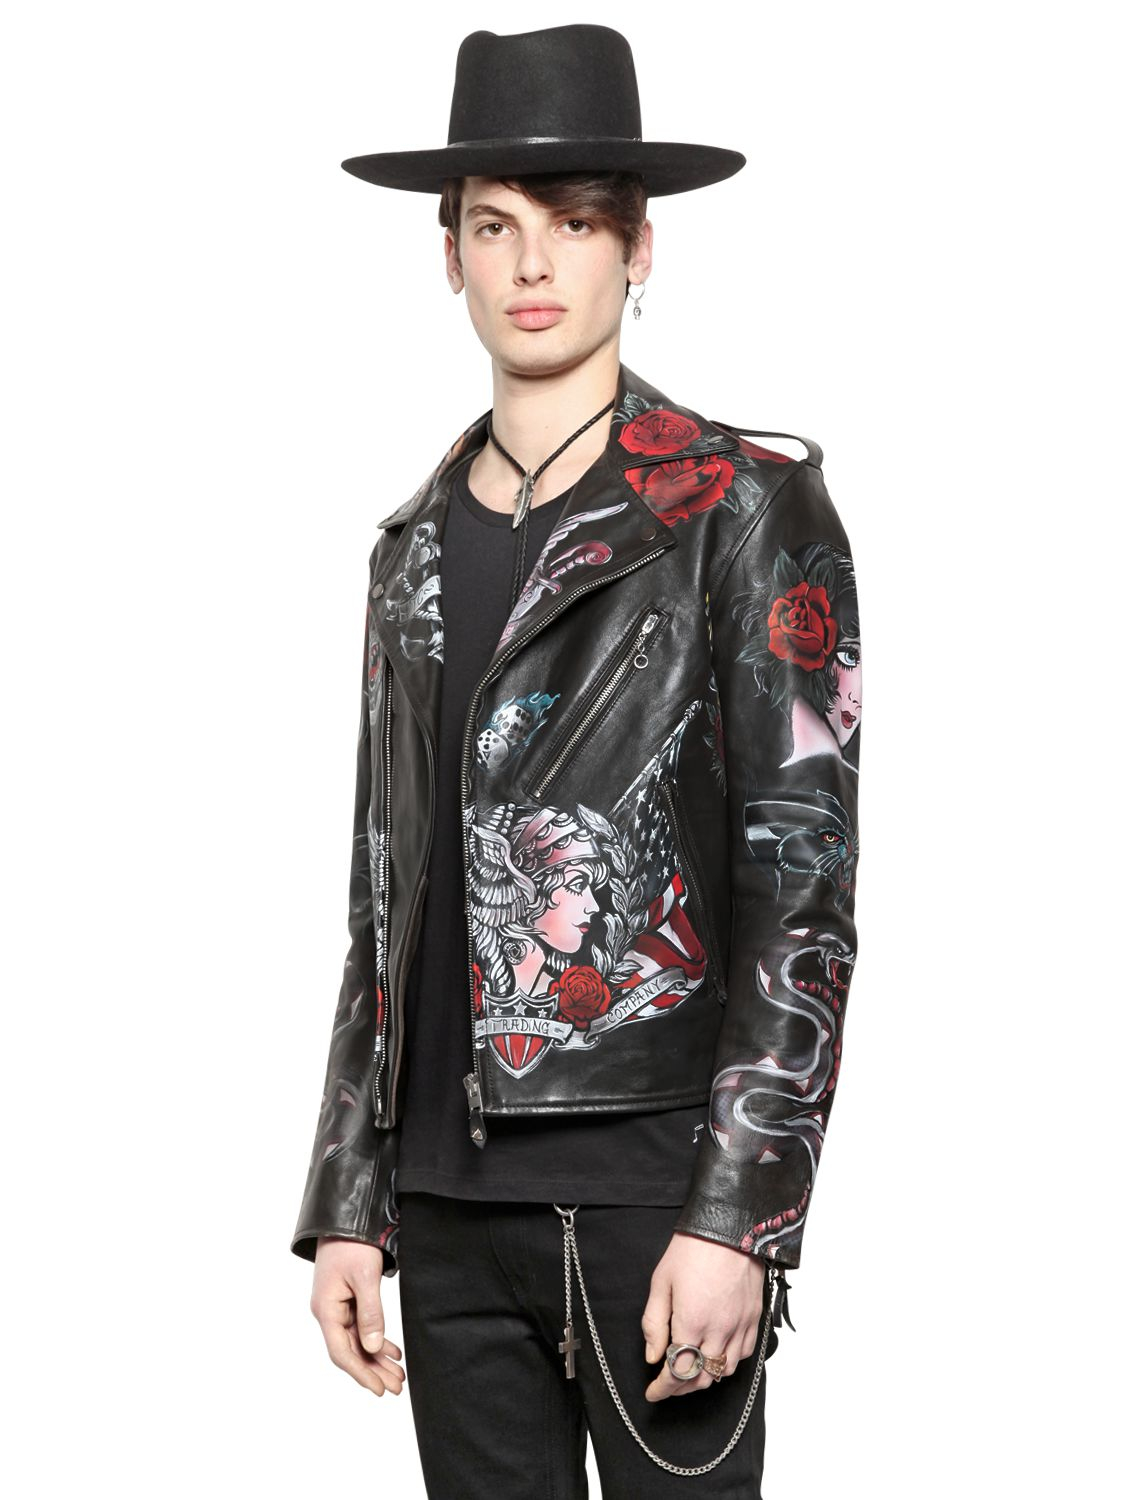 Htc Hollywood Trading Company Hand Painted Biker Jacket In